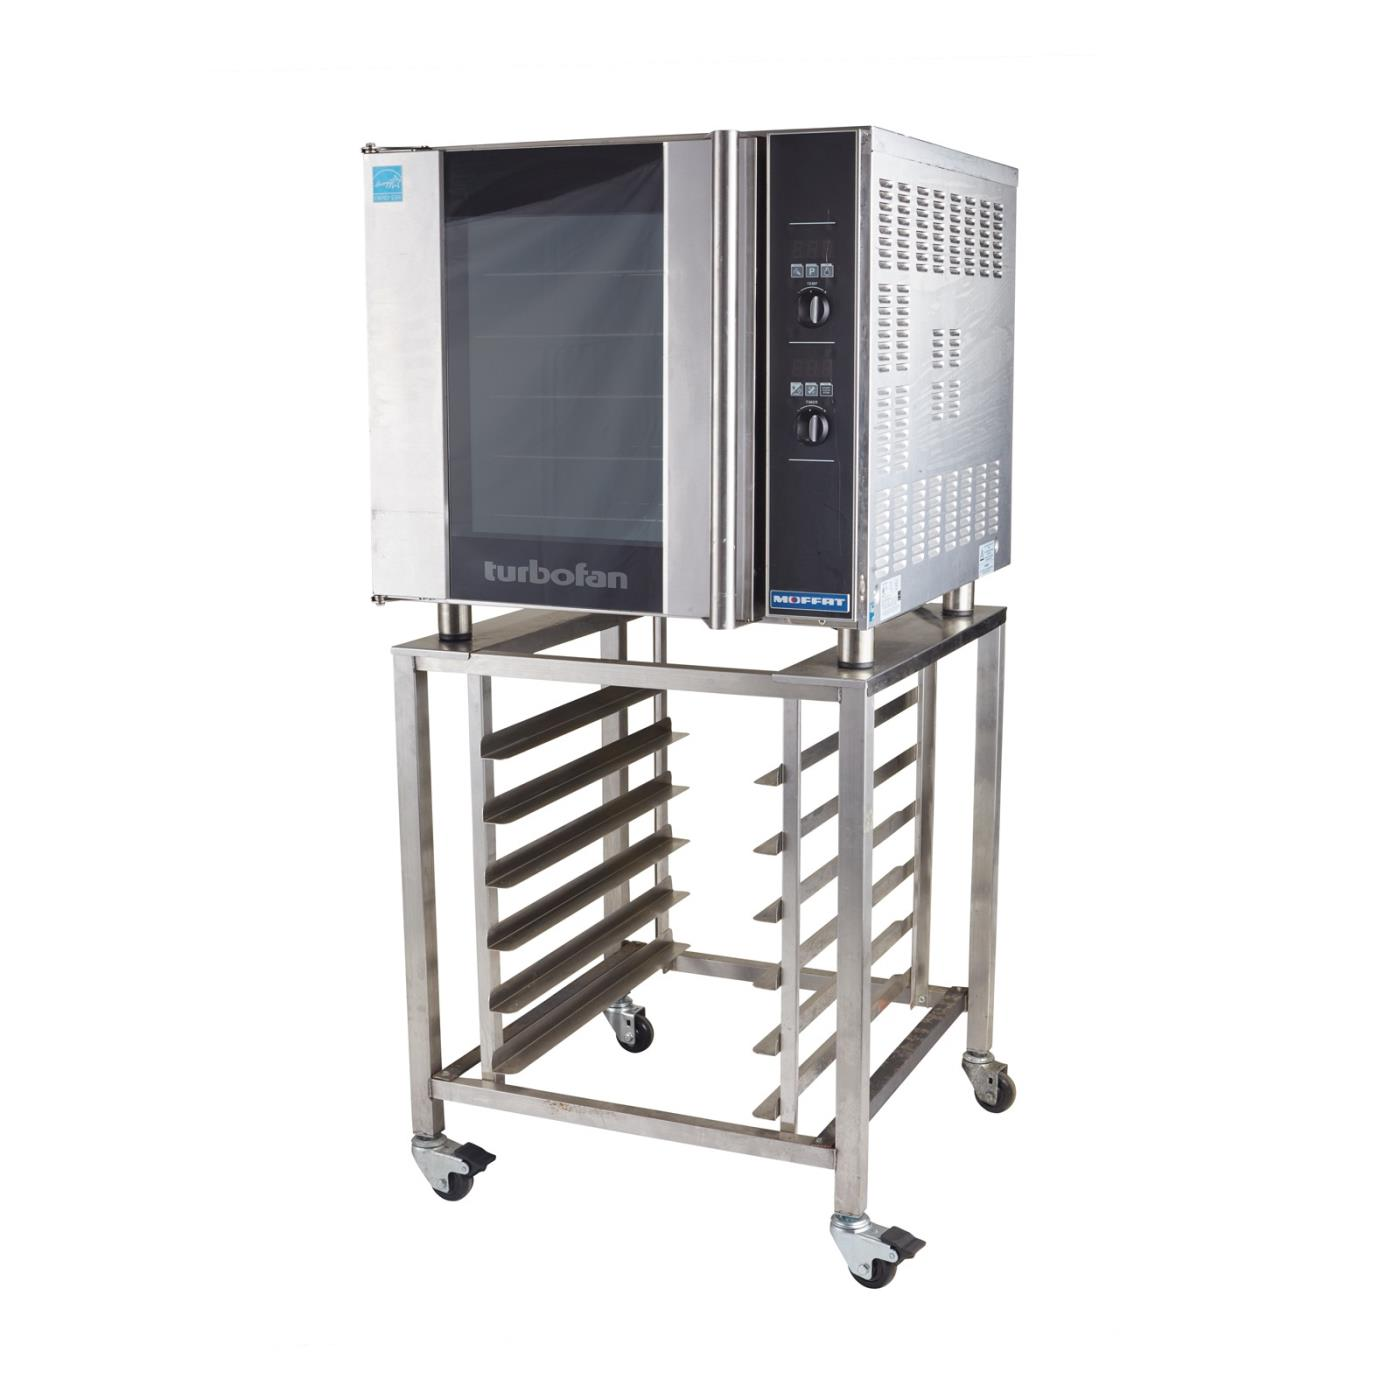 Moffat Turbofan Convection Oven